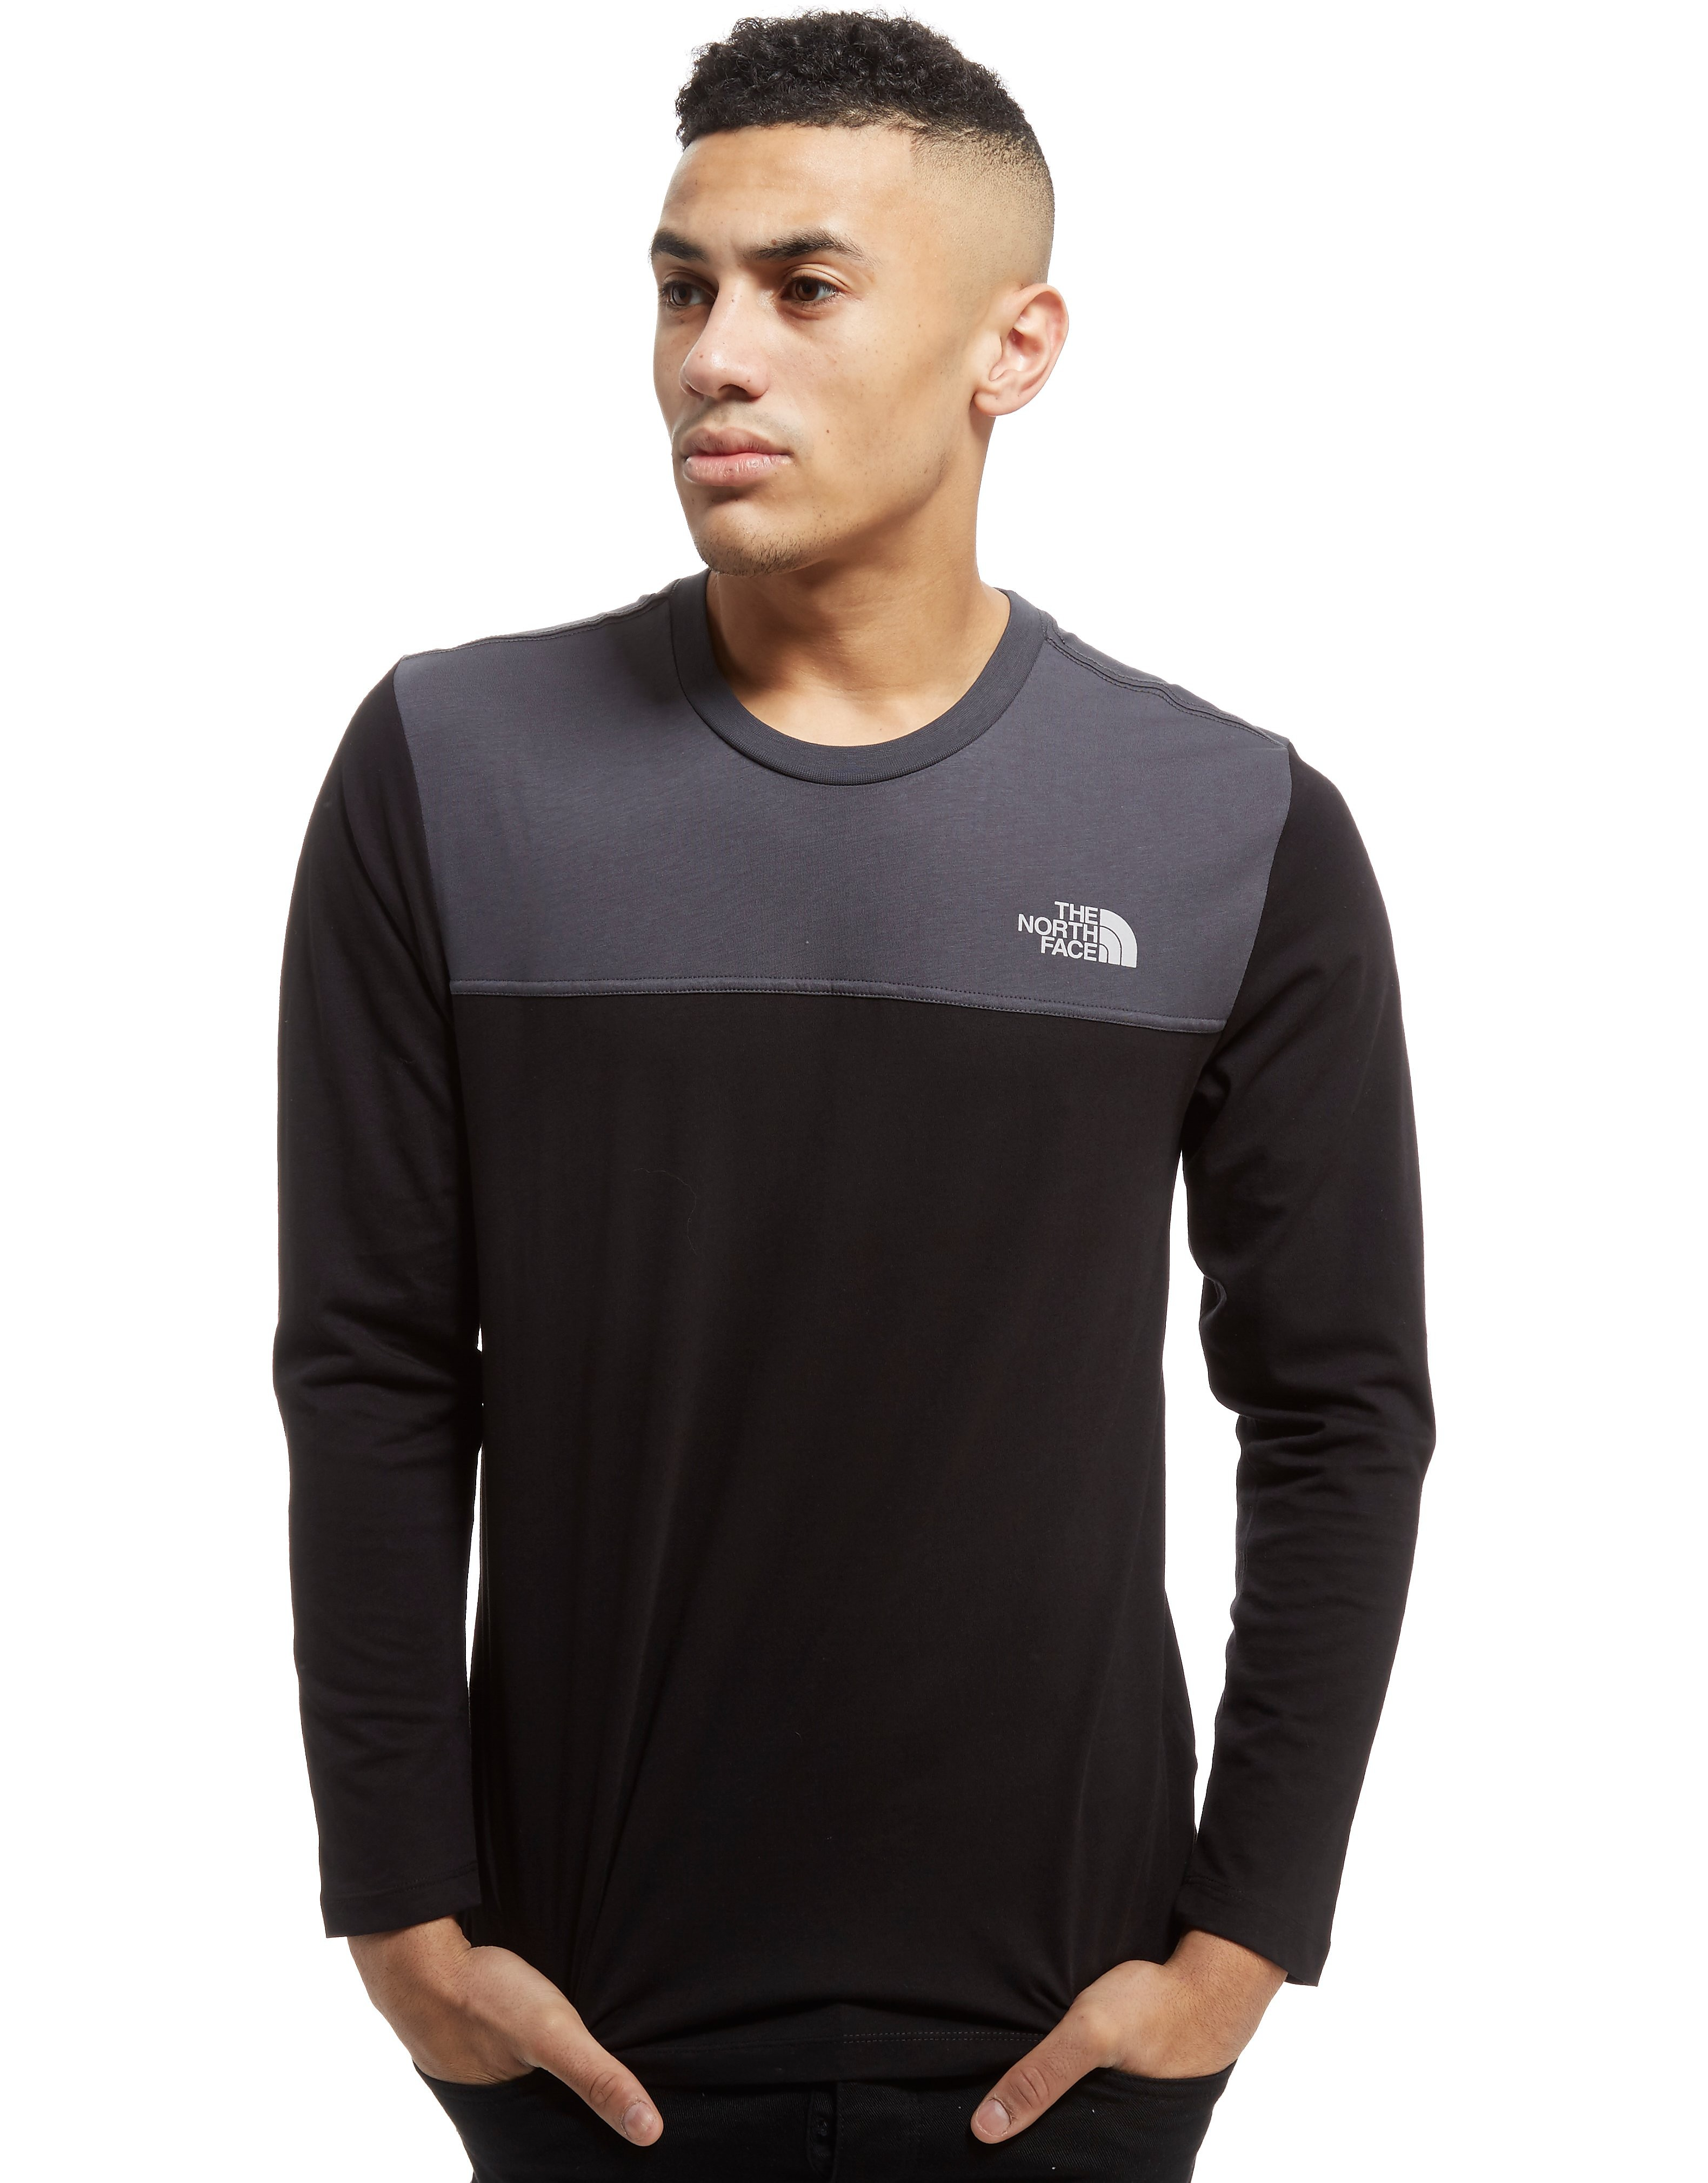 The North Face Colourblock T-Shirt Homme